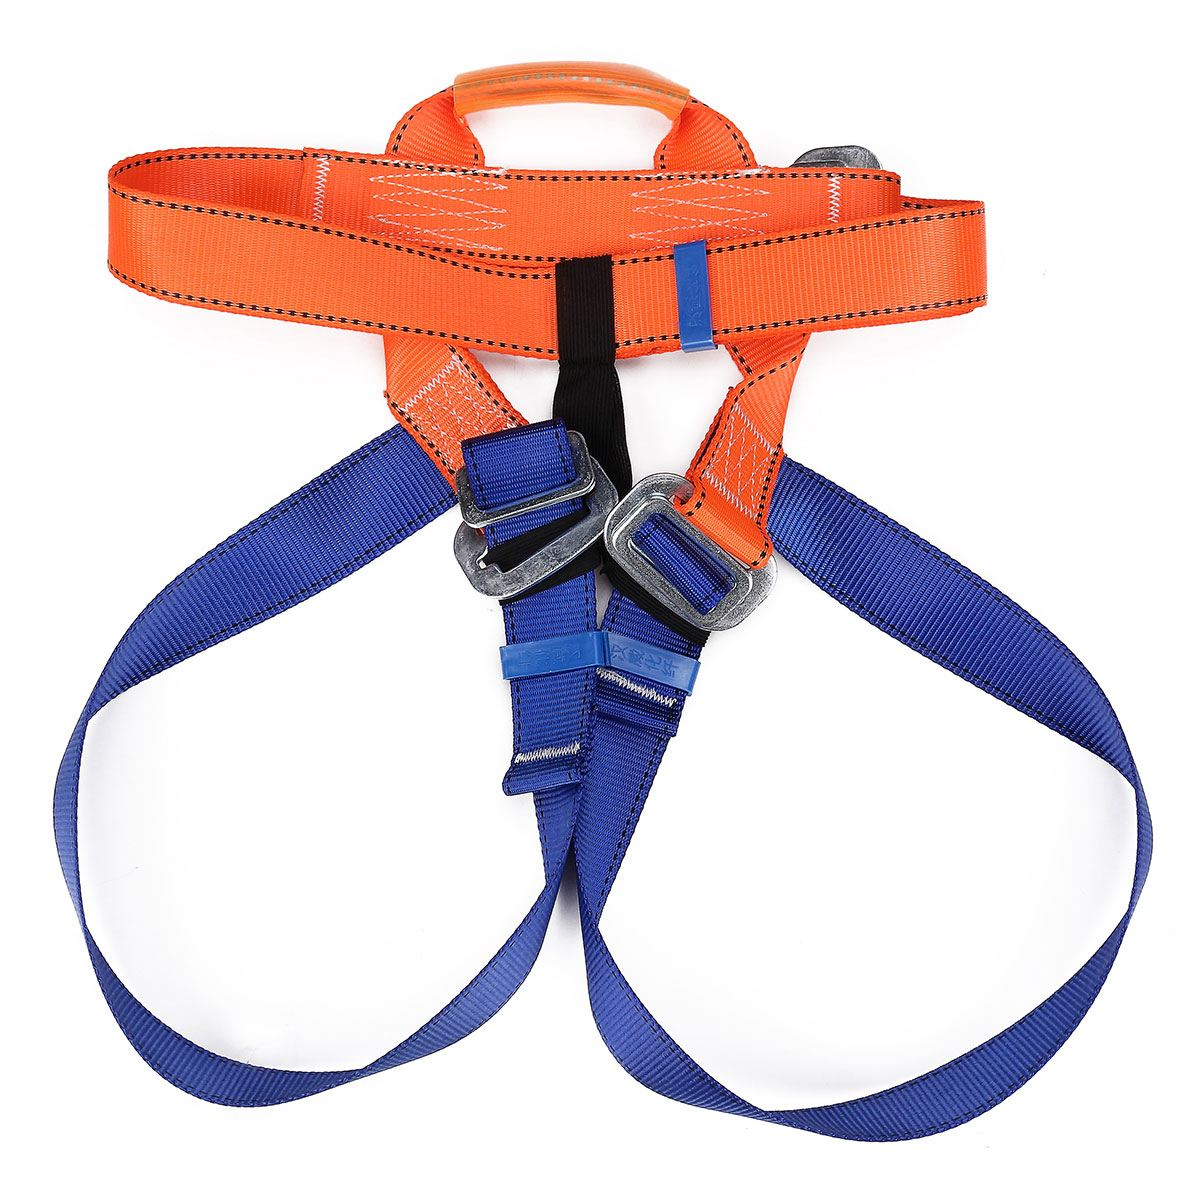 NEW Safurance Rappelling Rock Climbing Harness Seat Belts Sitting Bust Belts Half-body Safety belt equipment  Workplace Safety hot sale safety body harness outdoor mountaineering rock climbing harness protect waist seat belt outside multi tools